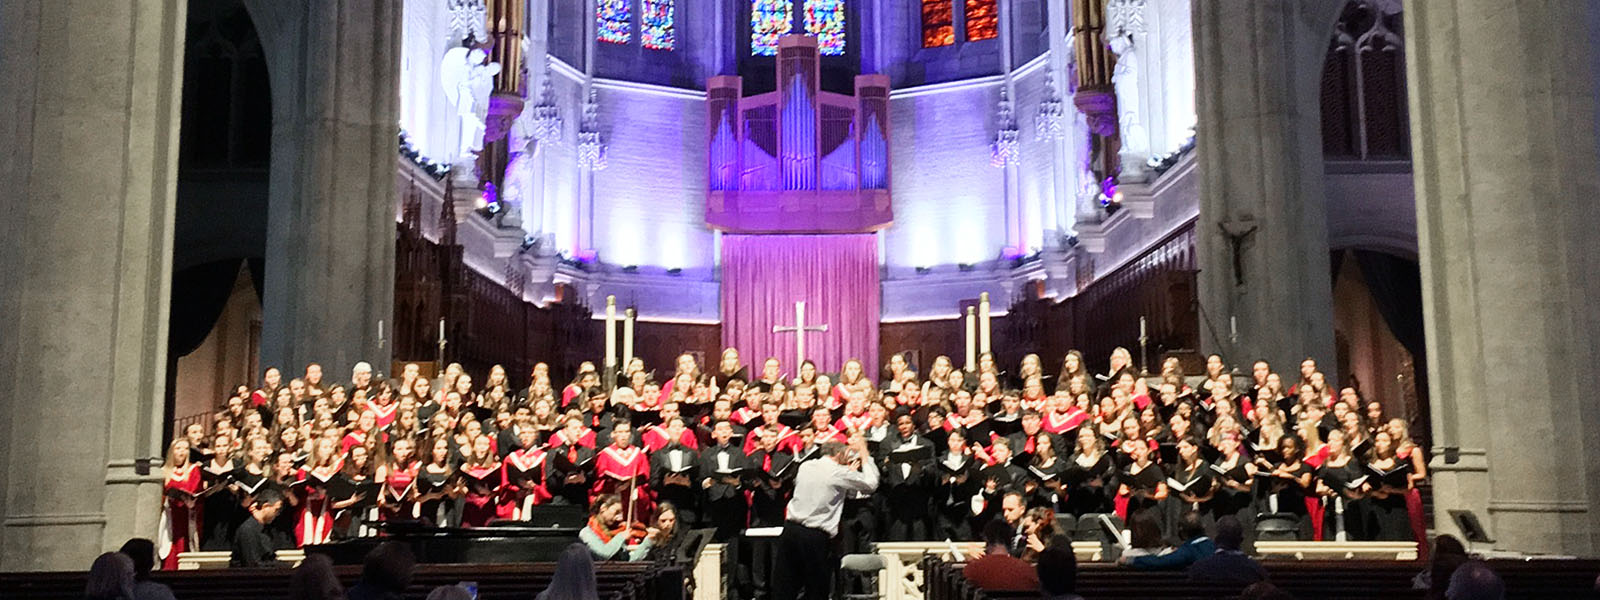 Concert Choir at Grace Cathedral